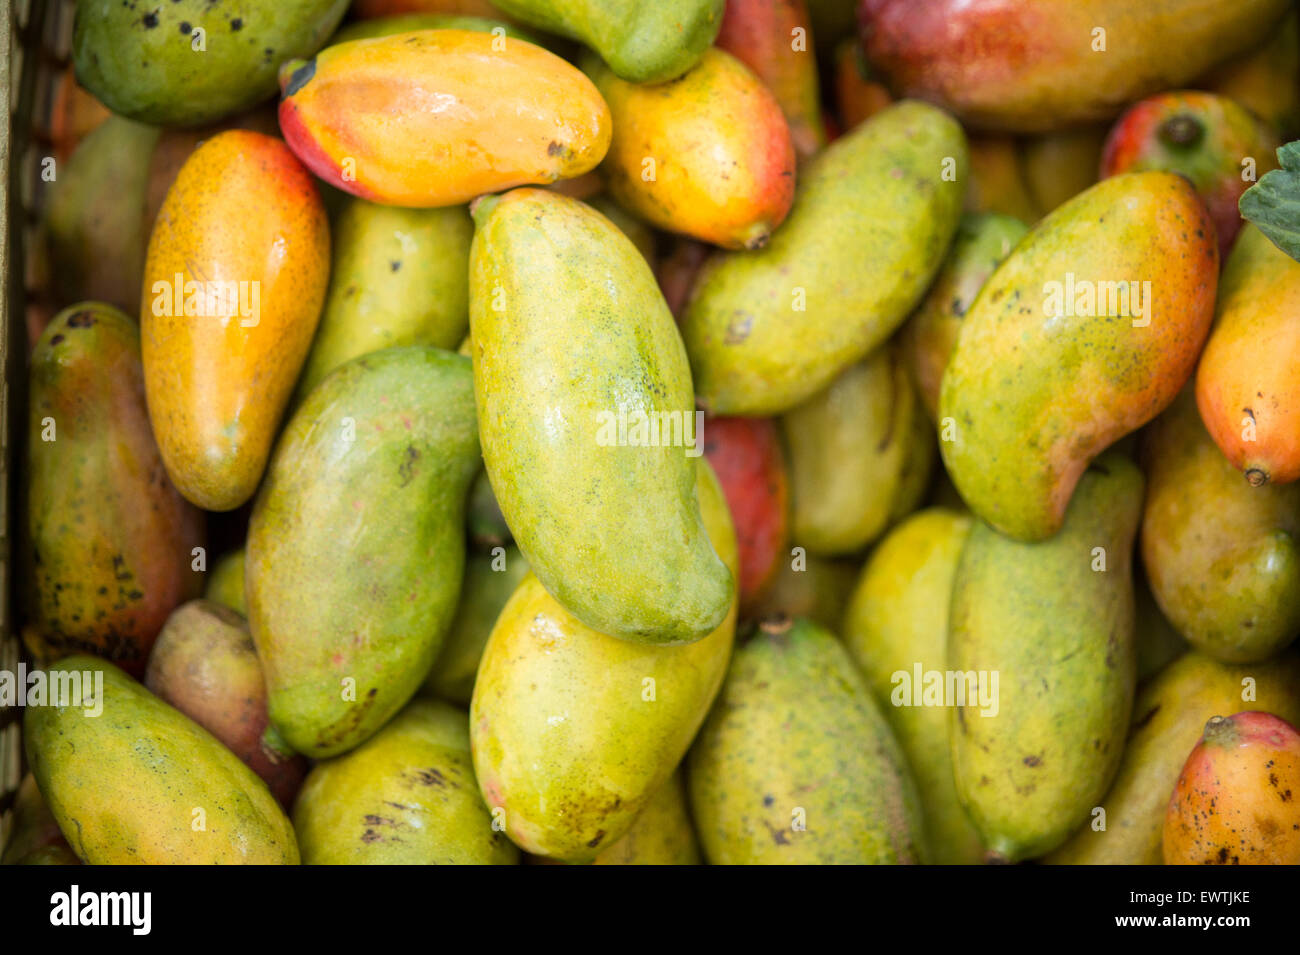 SOUTH AFRICA- Pile of fresh fruit at a farmers market in Pretoria - Stock Image